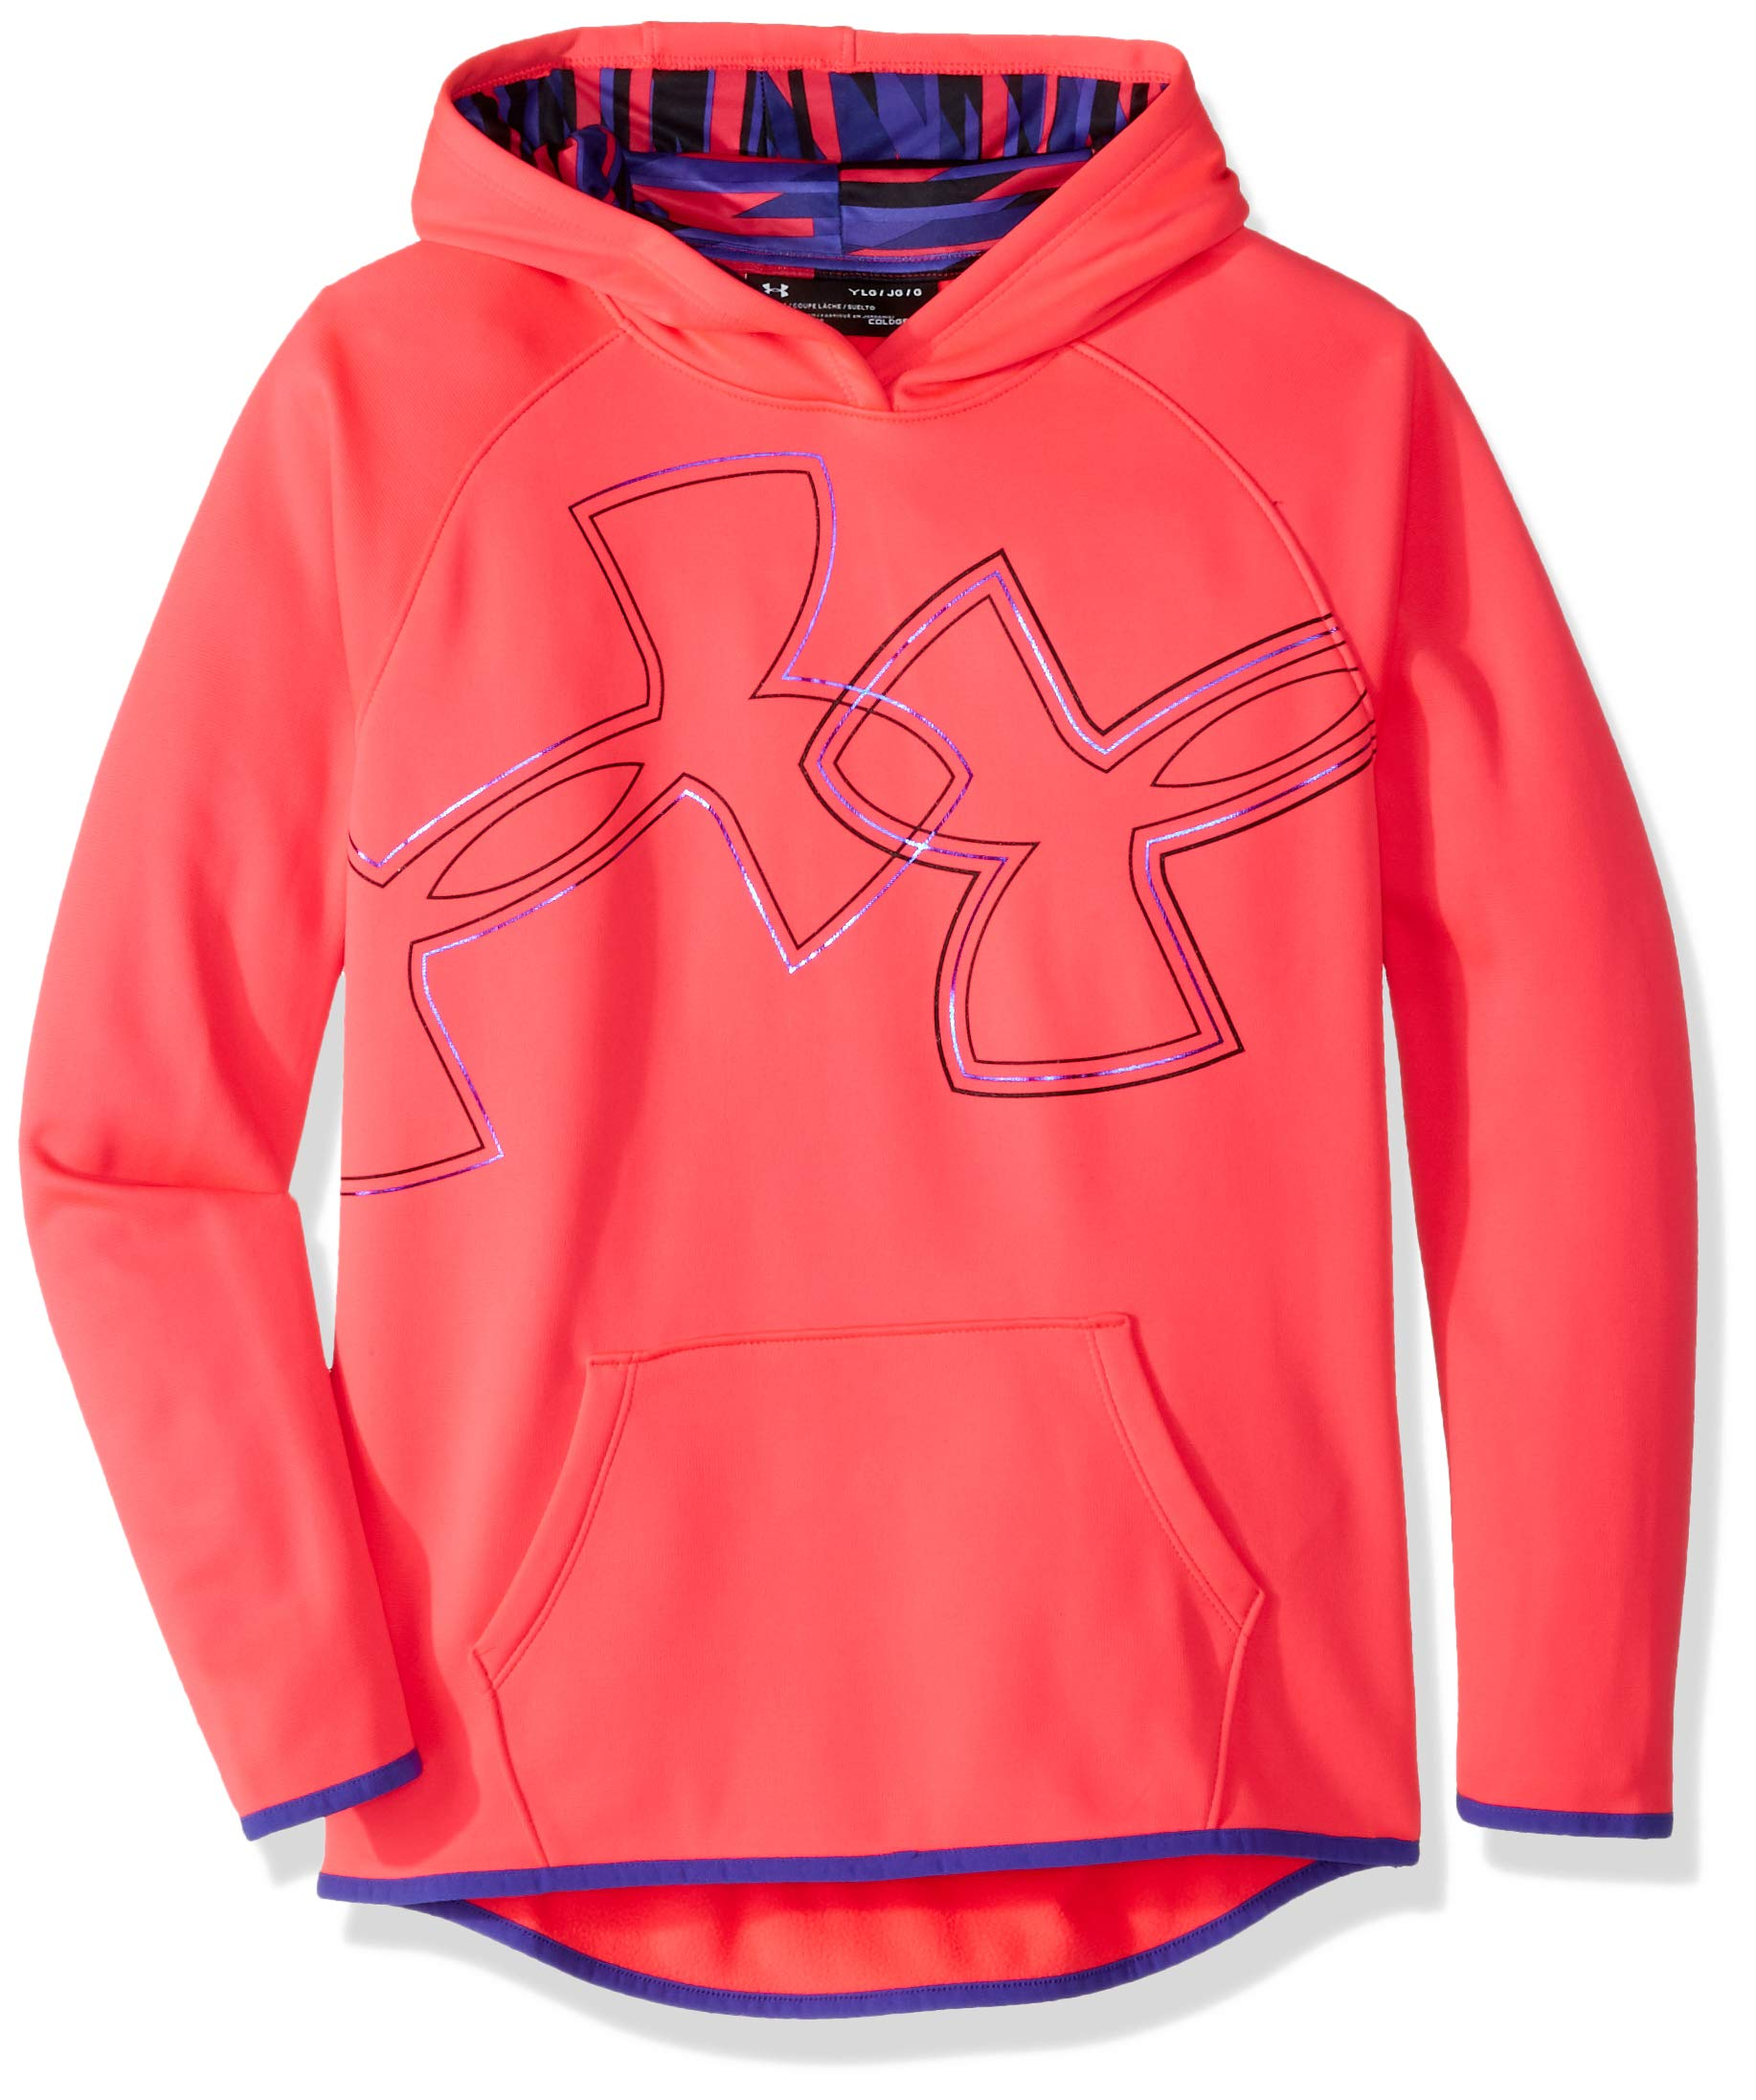 Under Armour Girls Armour Fleece Dual Logo Hoodie, Penta Pink (975)/Black, Youth X-Large by Under Armour